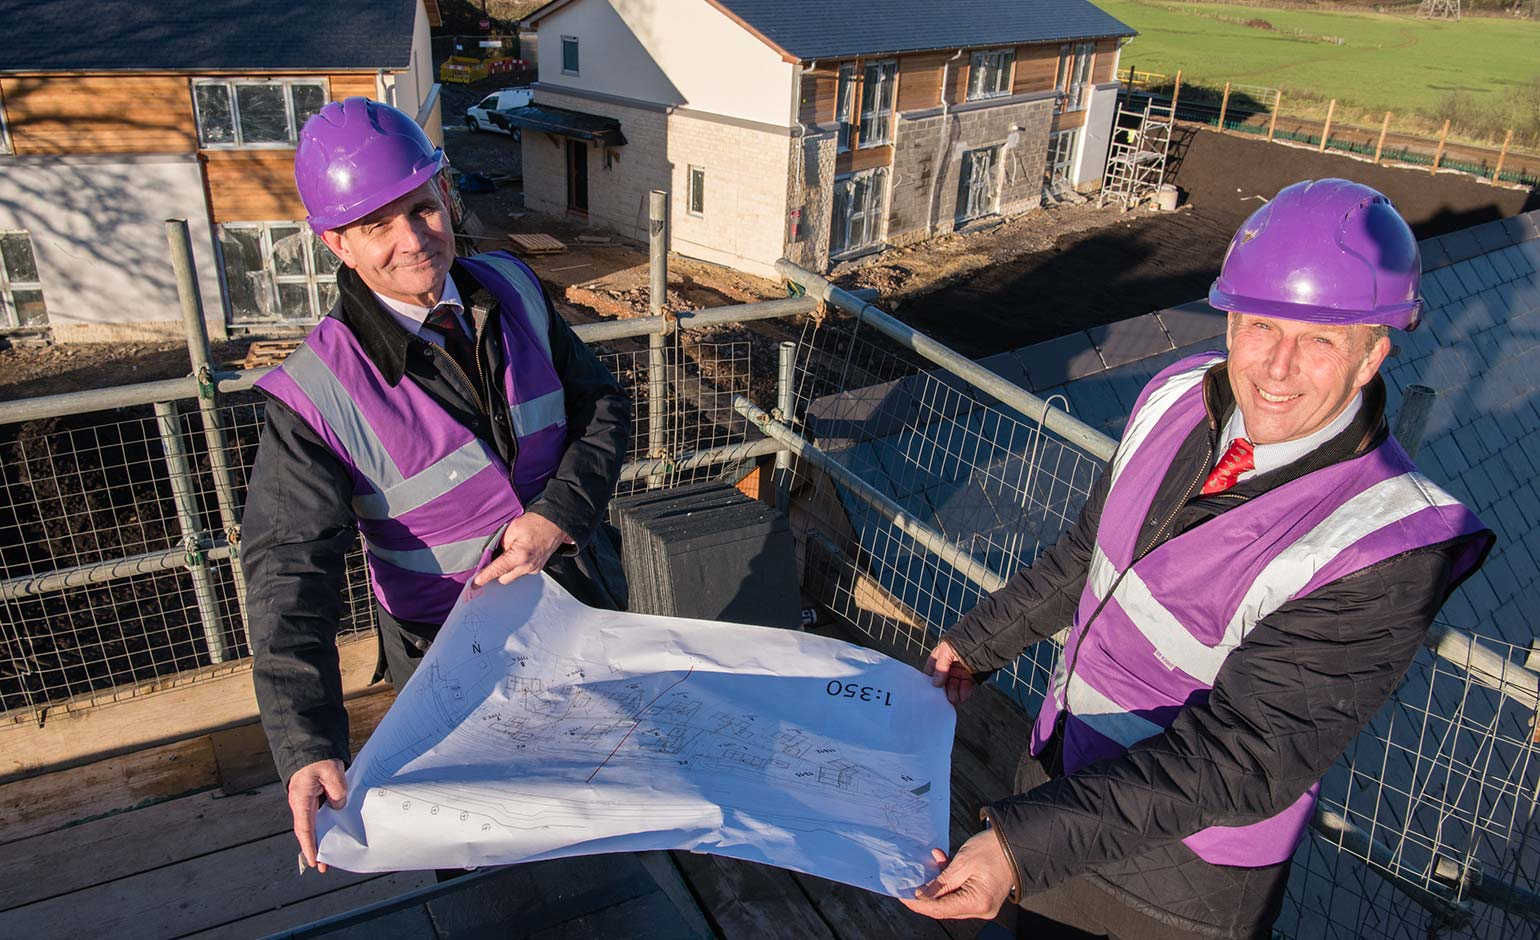 B&NES Council awarded more than £5 million for delivering new homes